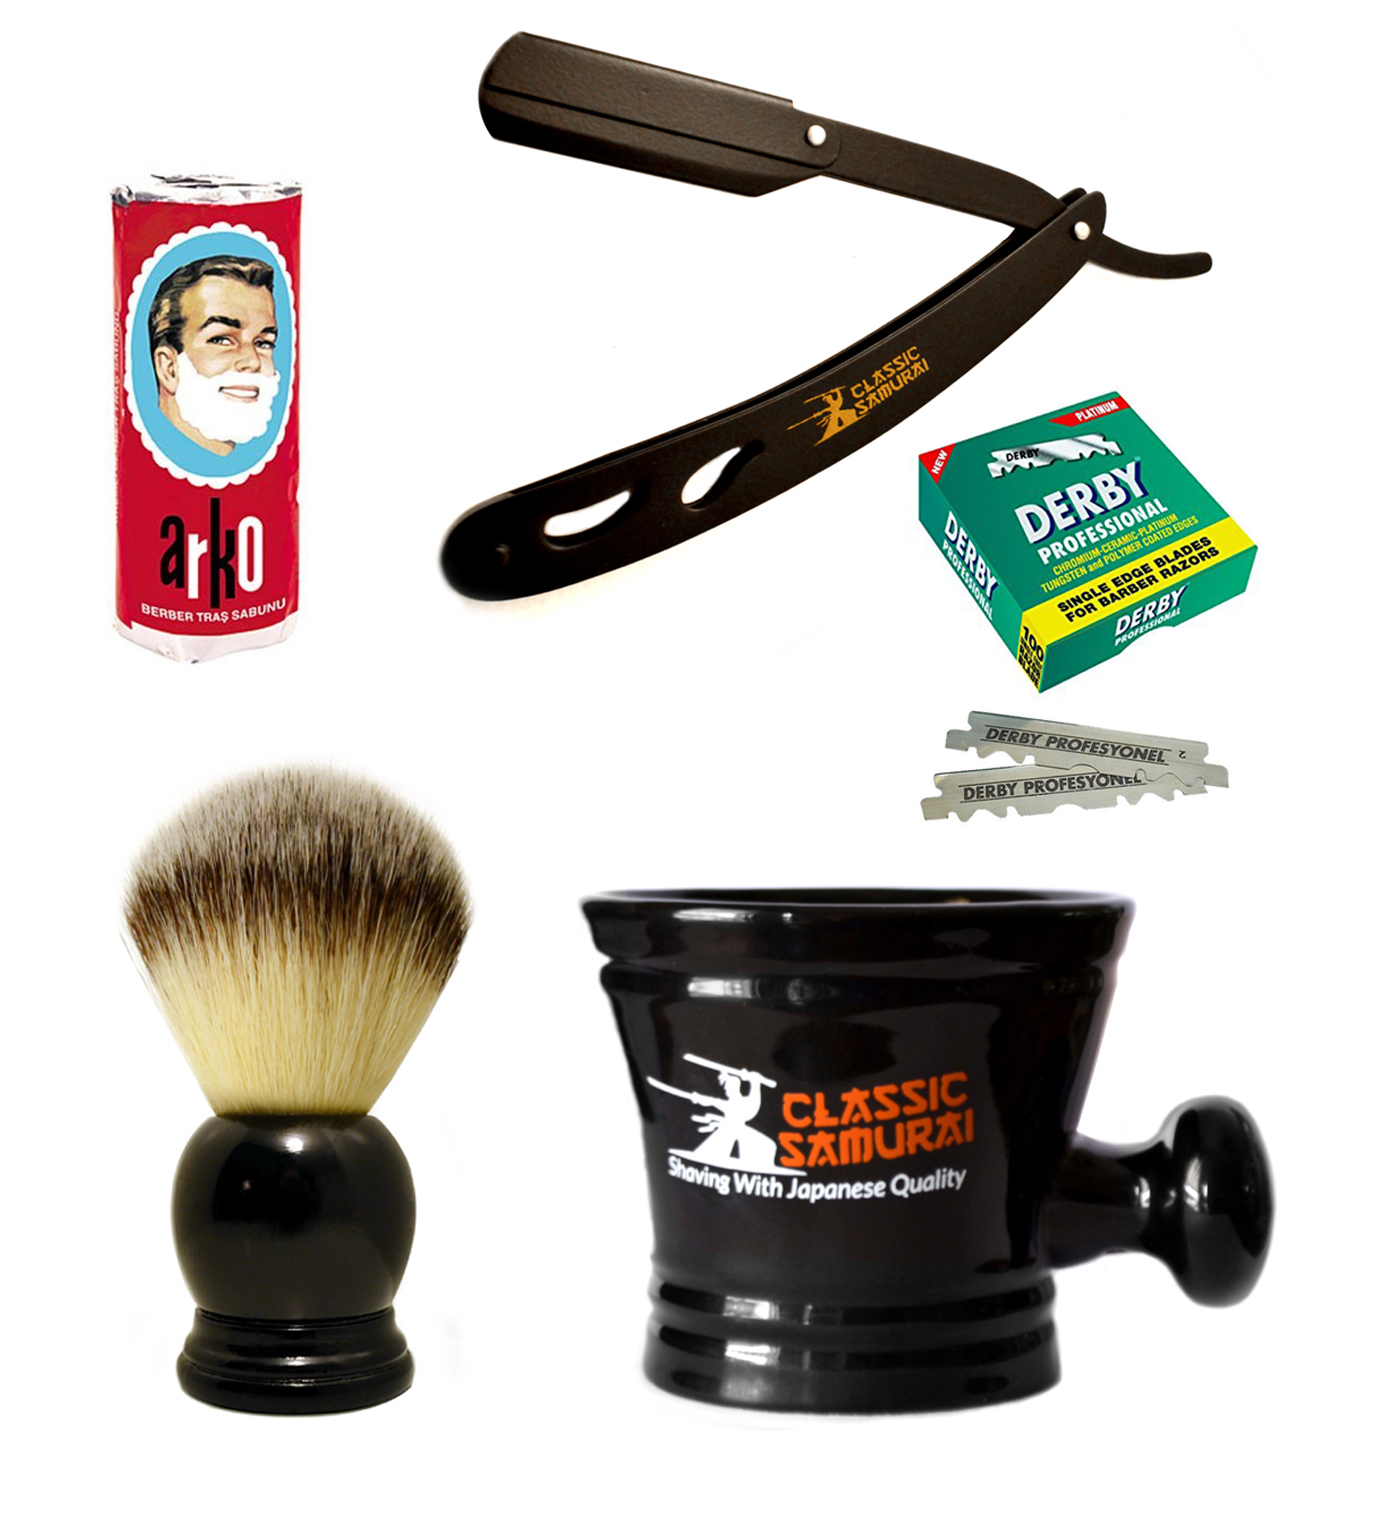 Classic Samurai Men's Shaving Set with Black Straight Razor Shavette, 100 Derby Blades, Brush, Arko Soap & Porcelain Mug